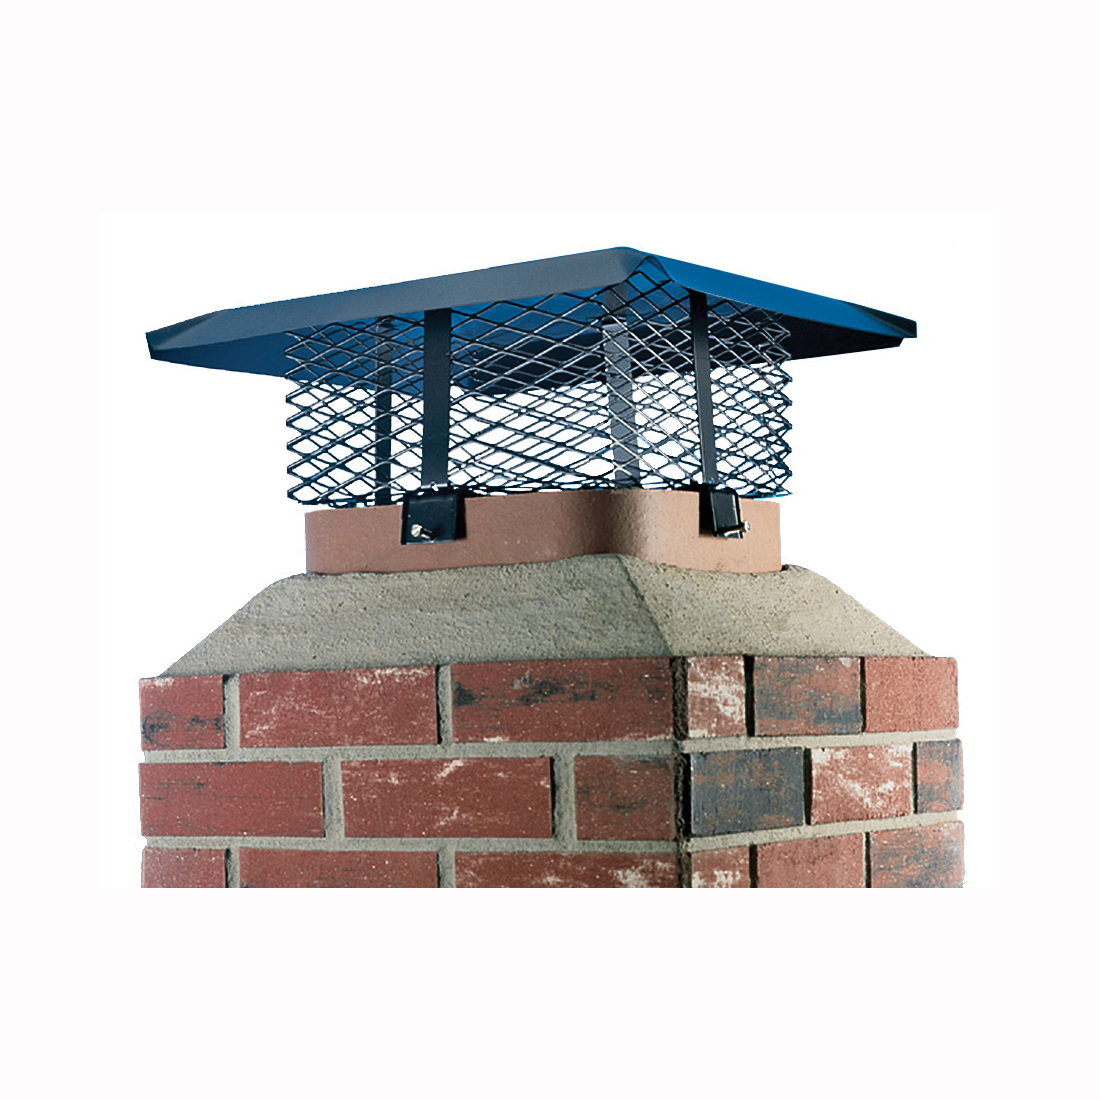 Picture of SHELTER SCADJ-S Adjustable Chimney Cap, Steel, Black, Powder-Coated, Fits Duct Size: 19-1/4 x 9-1/4 x 19-1/4 in